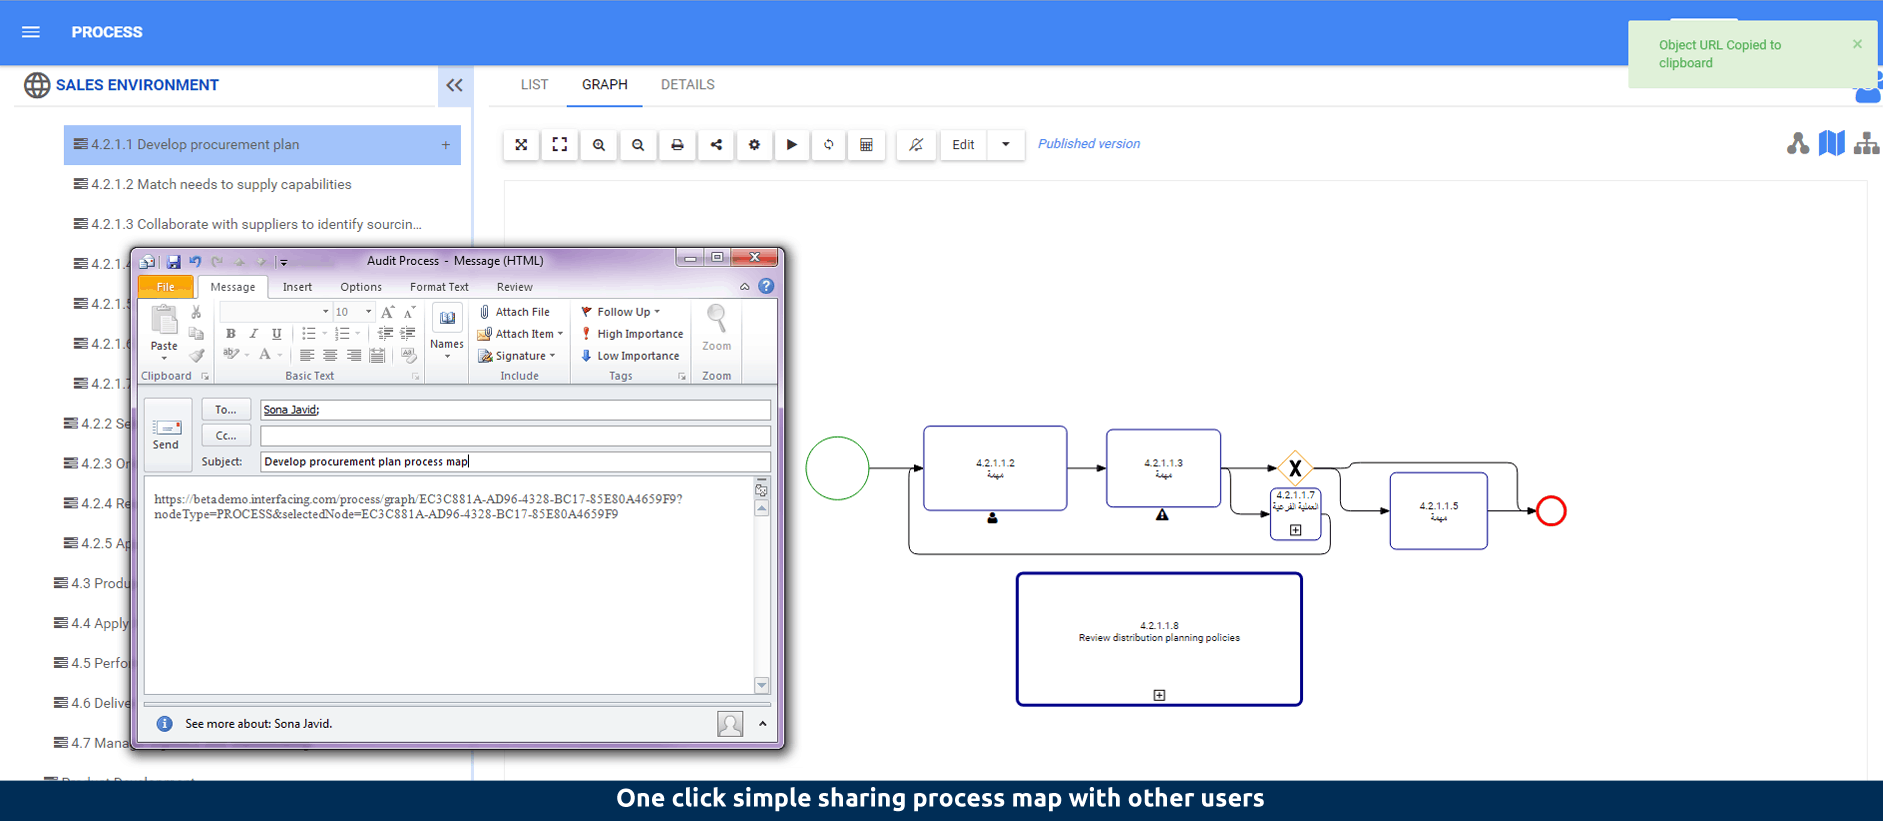 One click simple sharing process map with other users